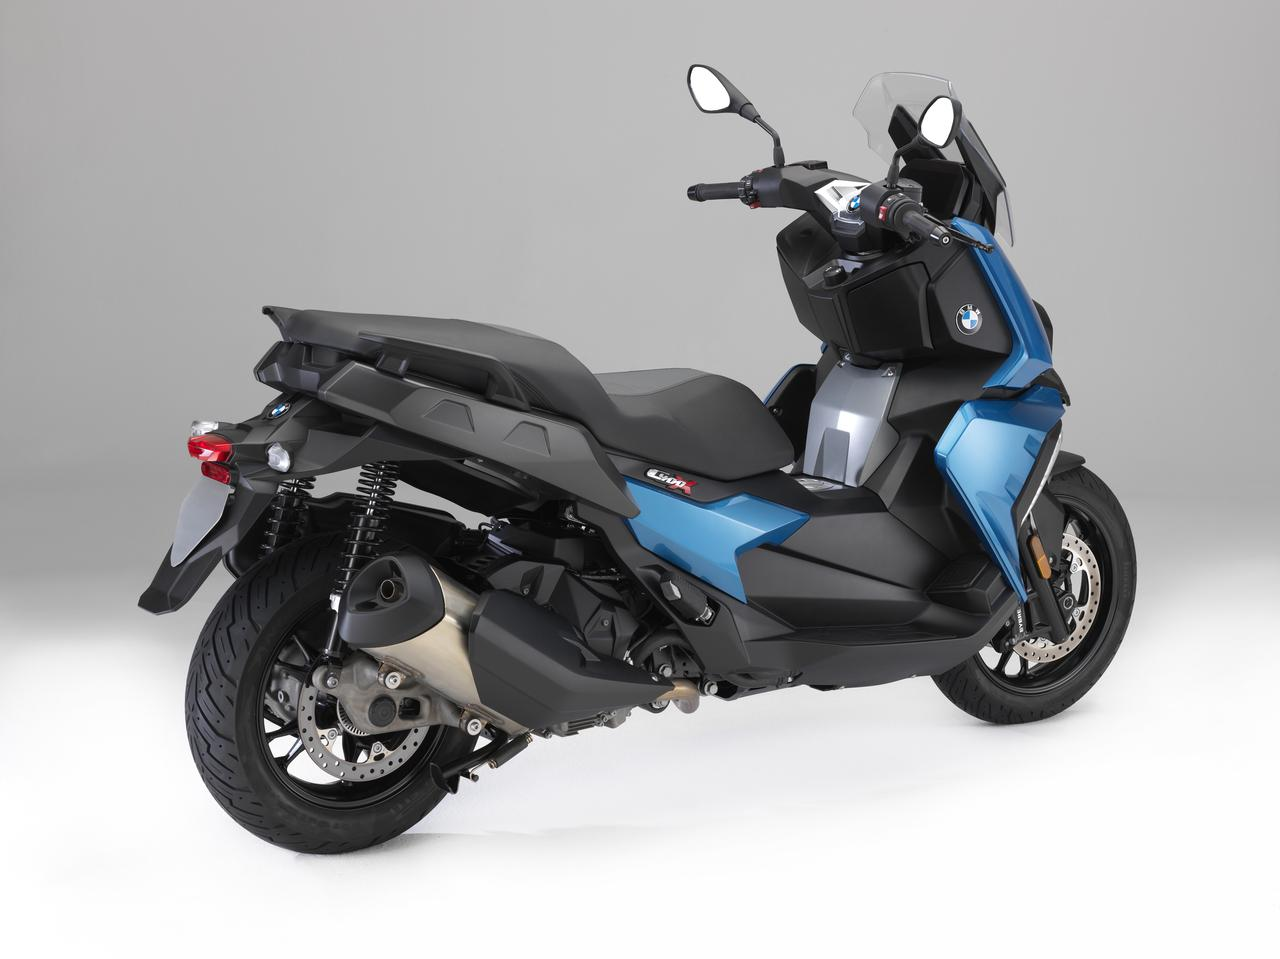 Images : 14番目の画像 - BMW C 400 X - LAWRENCE - Motorcycle x Cars + α = Your Life.